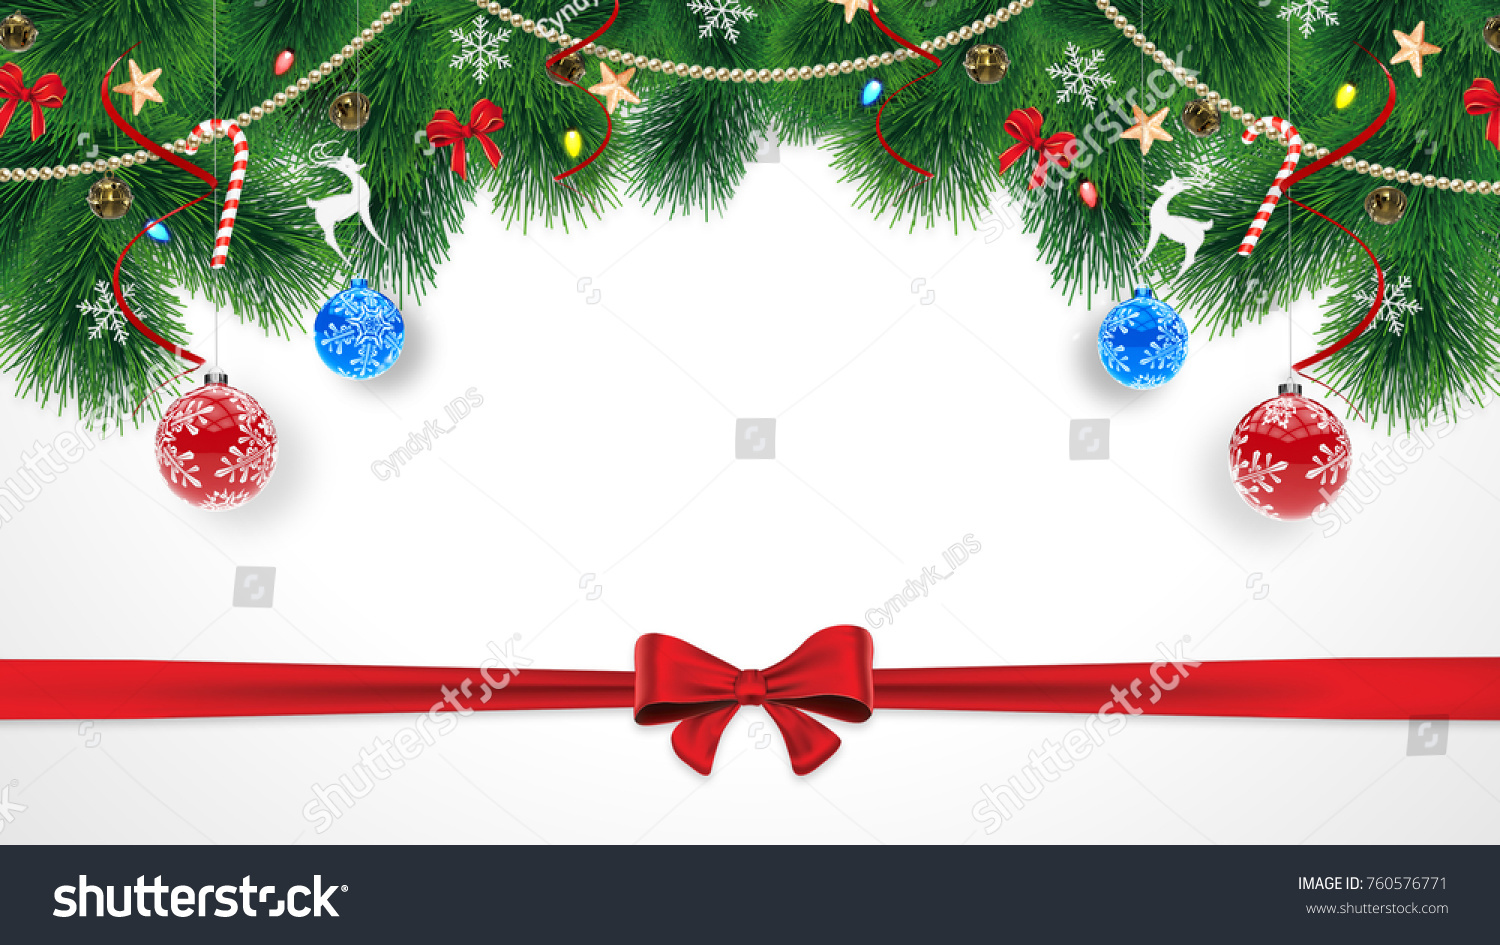 Royalty Free Stock Illustration of Cute Original Merry Christmas ...